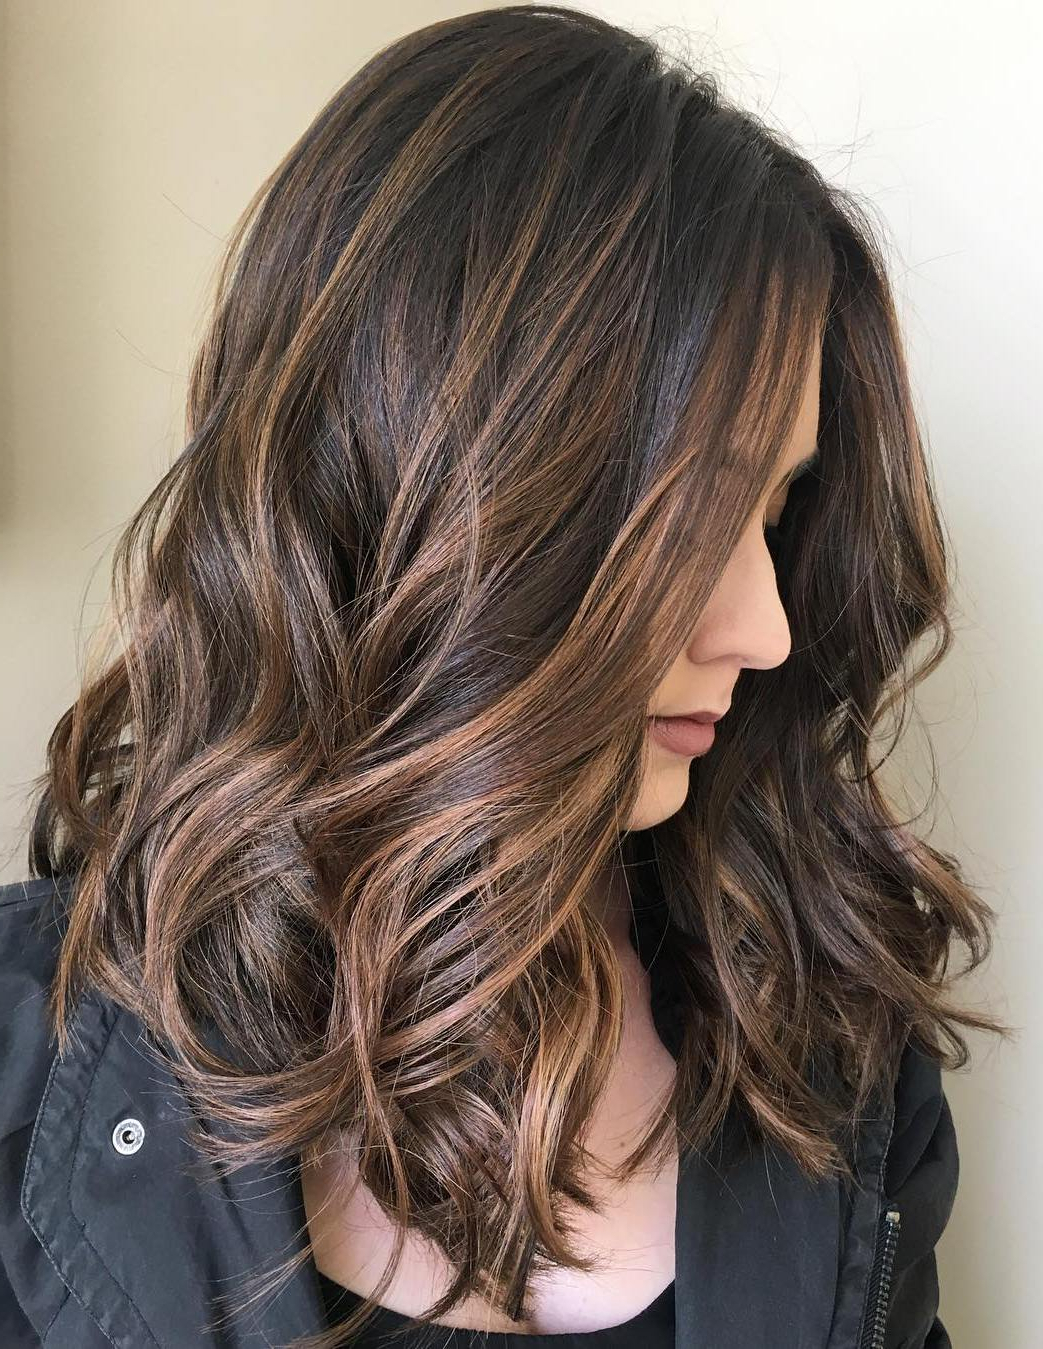 70 Balayage Hair Color Ideas With Blonde, Brown And Caramel Highlights In Most Popular Warm Toned Brown Hairstyles With Caramel Balayage (Gallery 14 of 20)